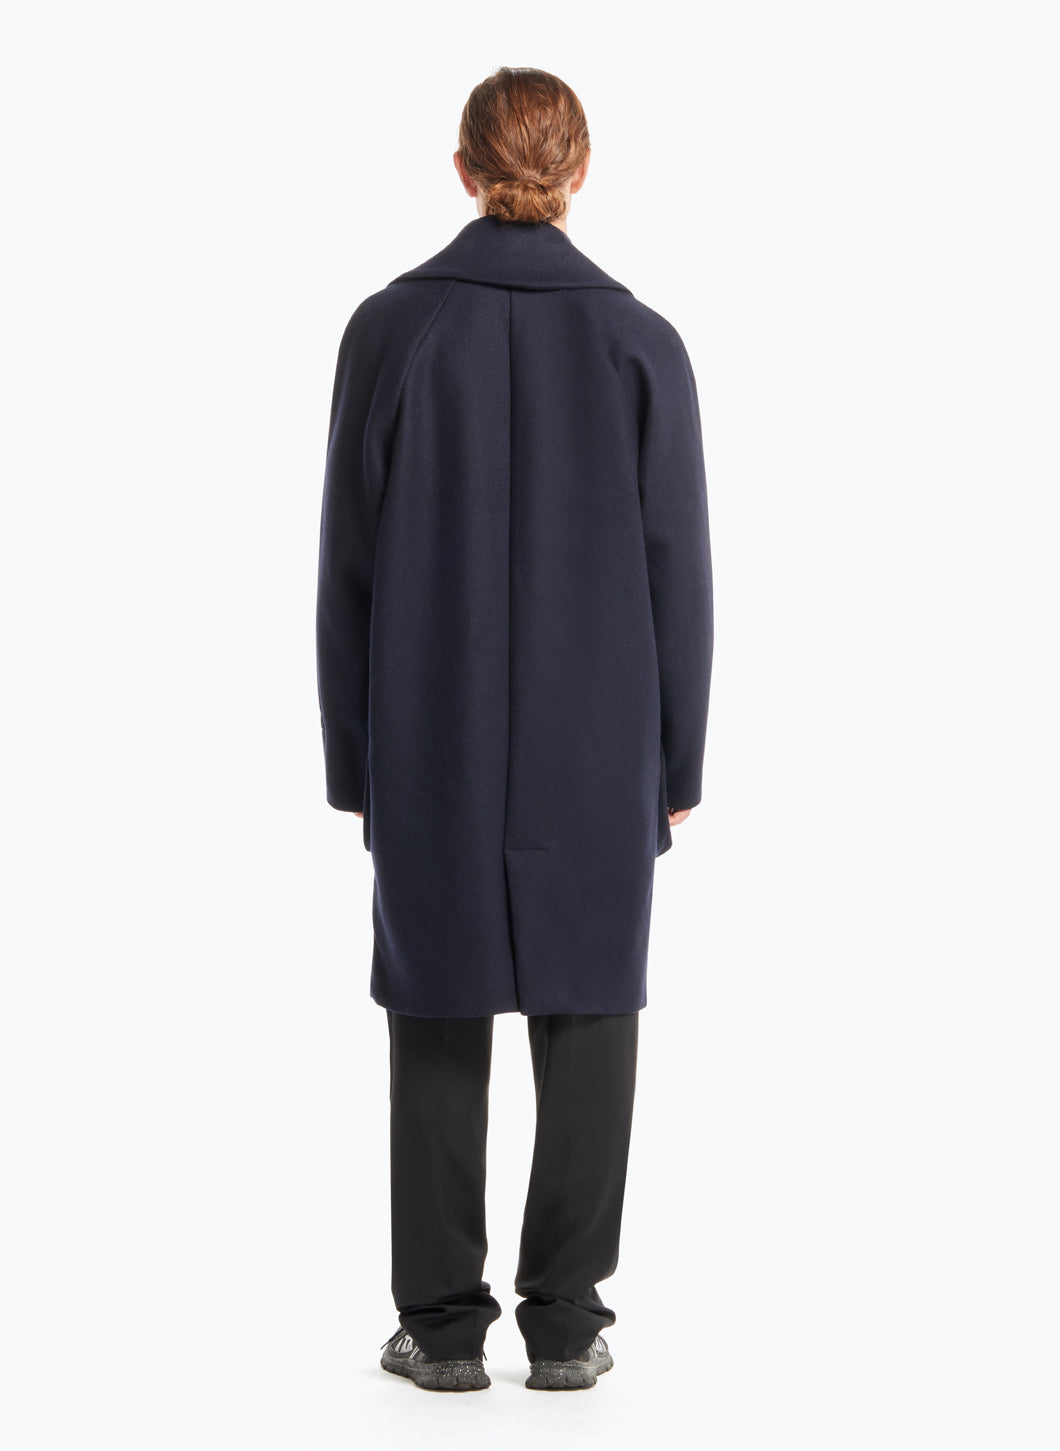 Coat with Crossed Collar in Navy Blue Wool